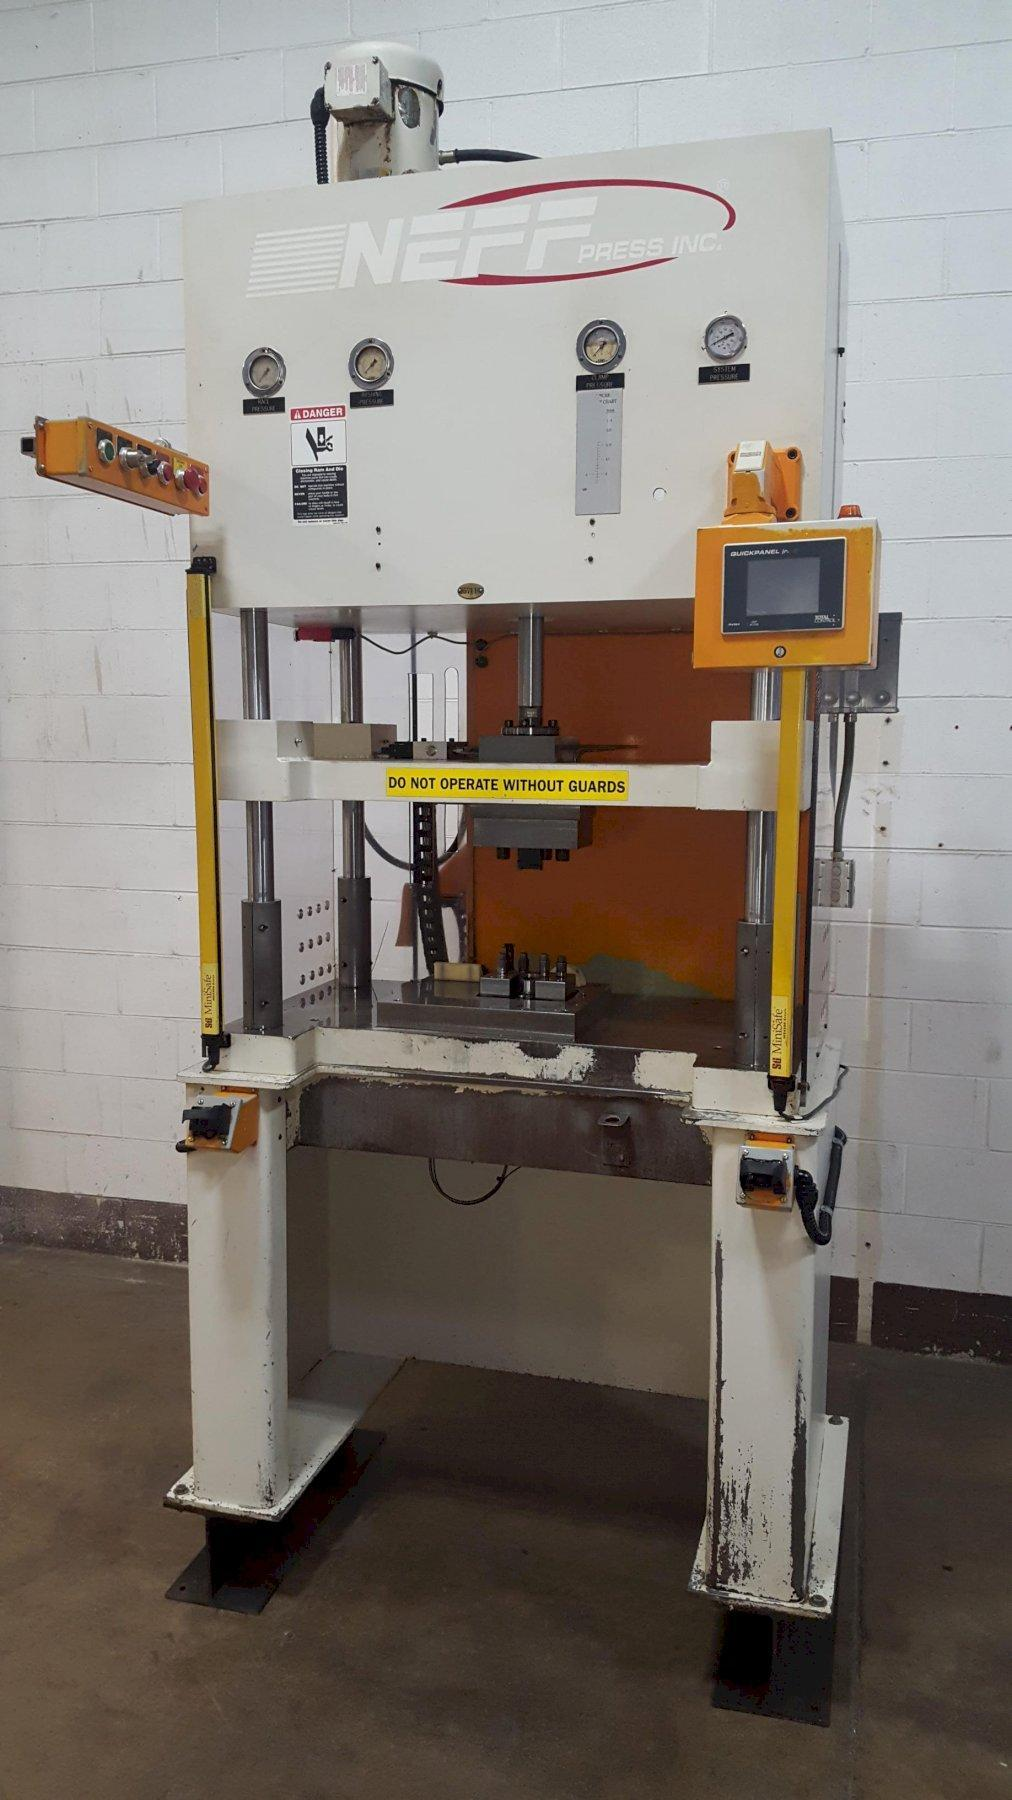 12-Ton Neff Model H12-5M 4-Post Hydraulic Press